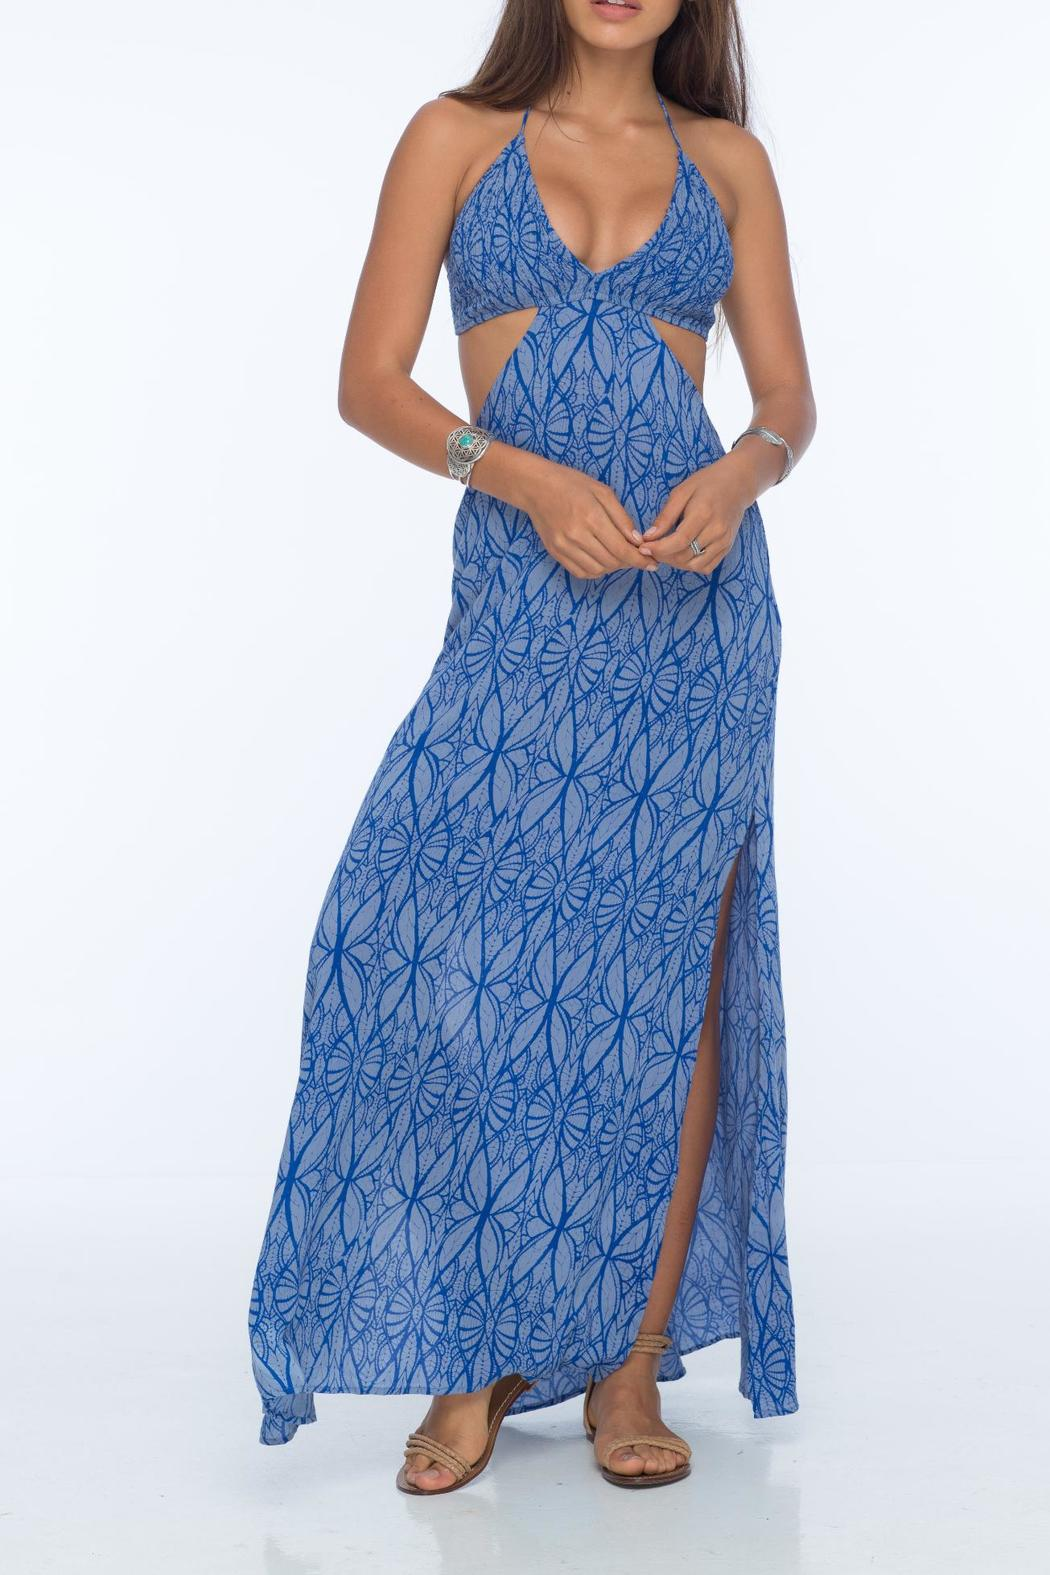 0977f8e1895 Indah Blaze Cutout Dress from Florida by Perspicasity — Shoptiques